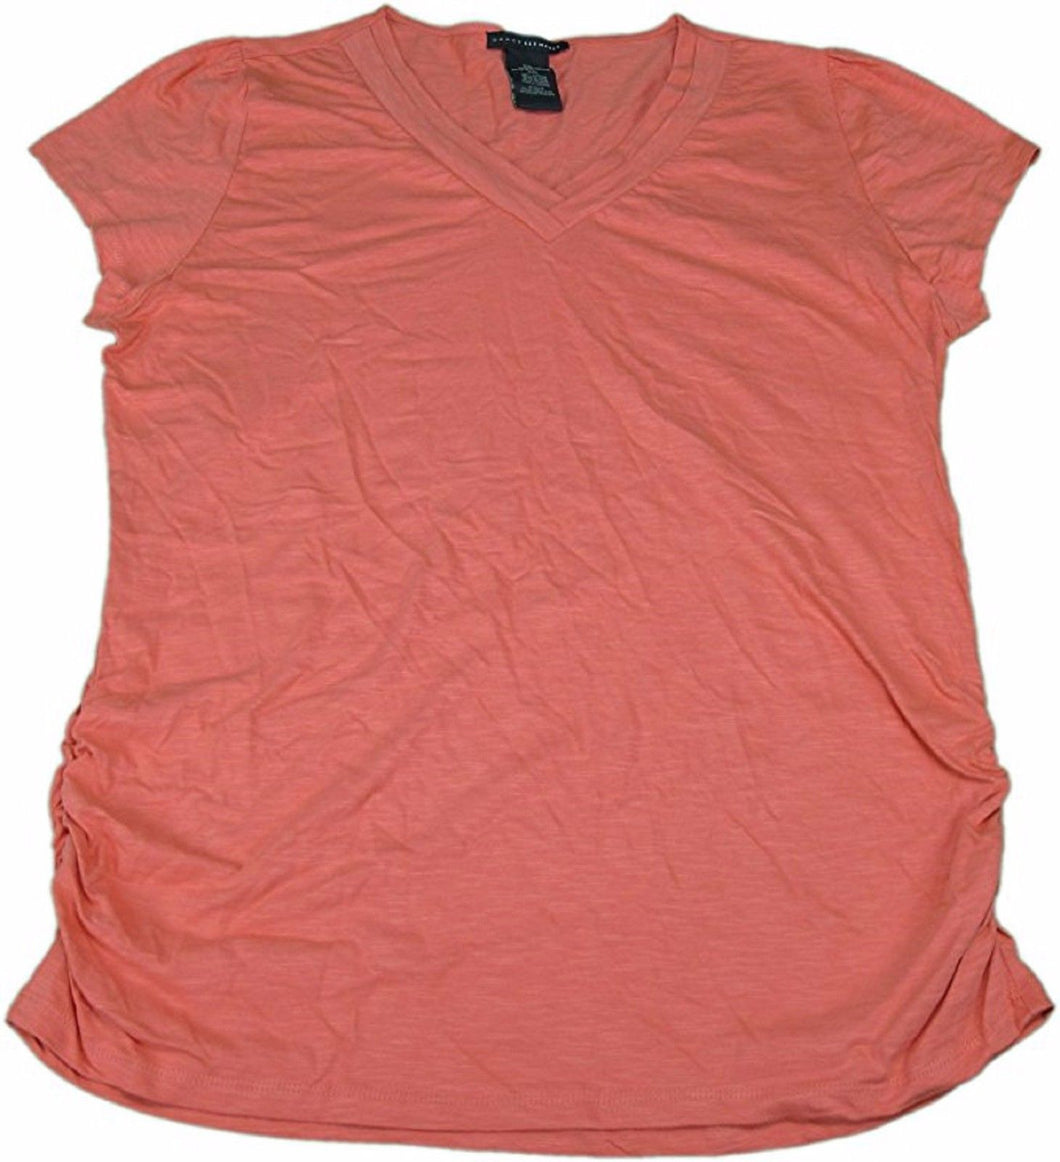 Grace Elements Ladies Size Small Short Sleeve V-Neck Knit Top, Coral Kiss